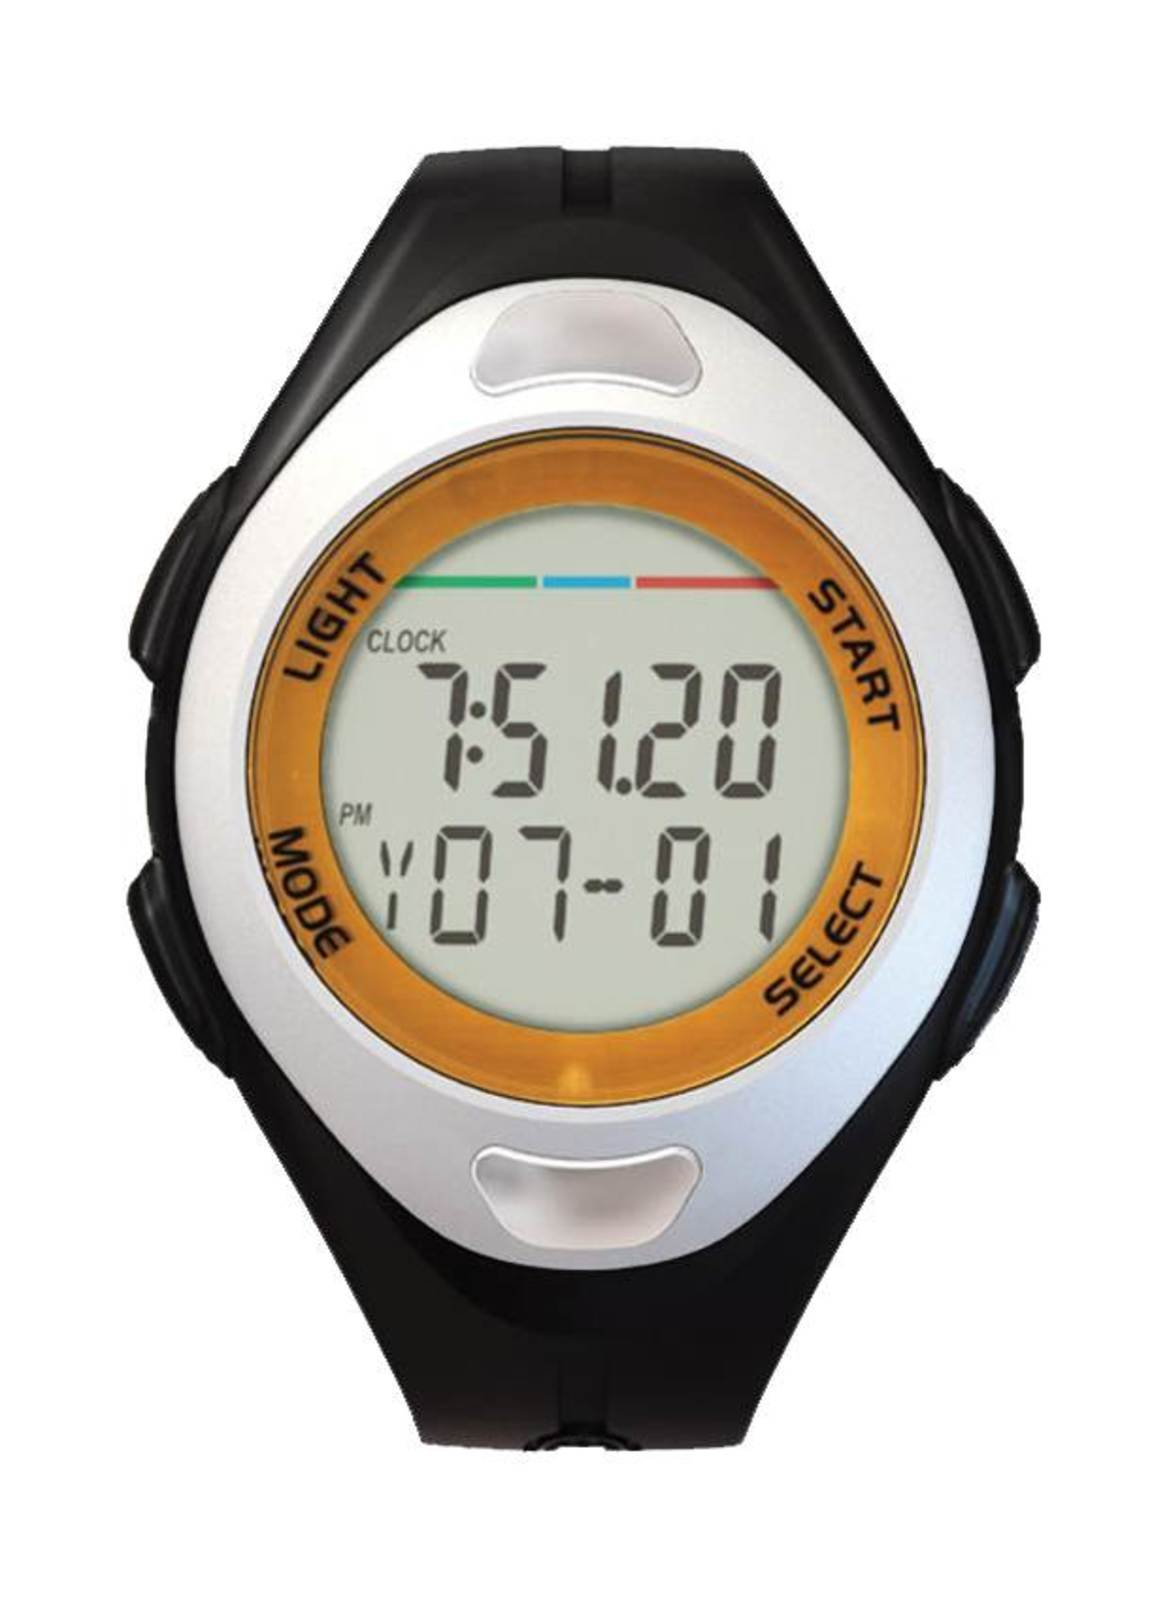 Js-712a Stopwatch-pedo-pulse Digital Wrist Watch